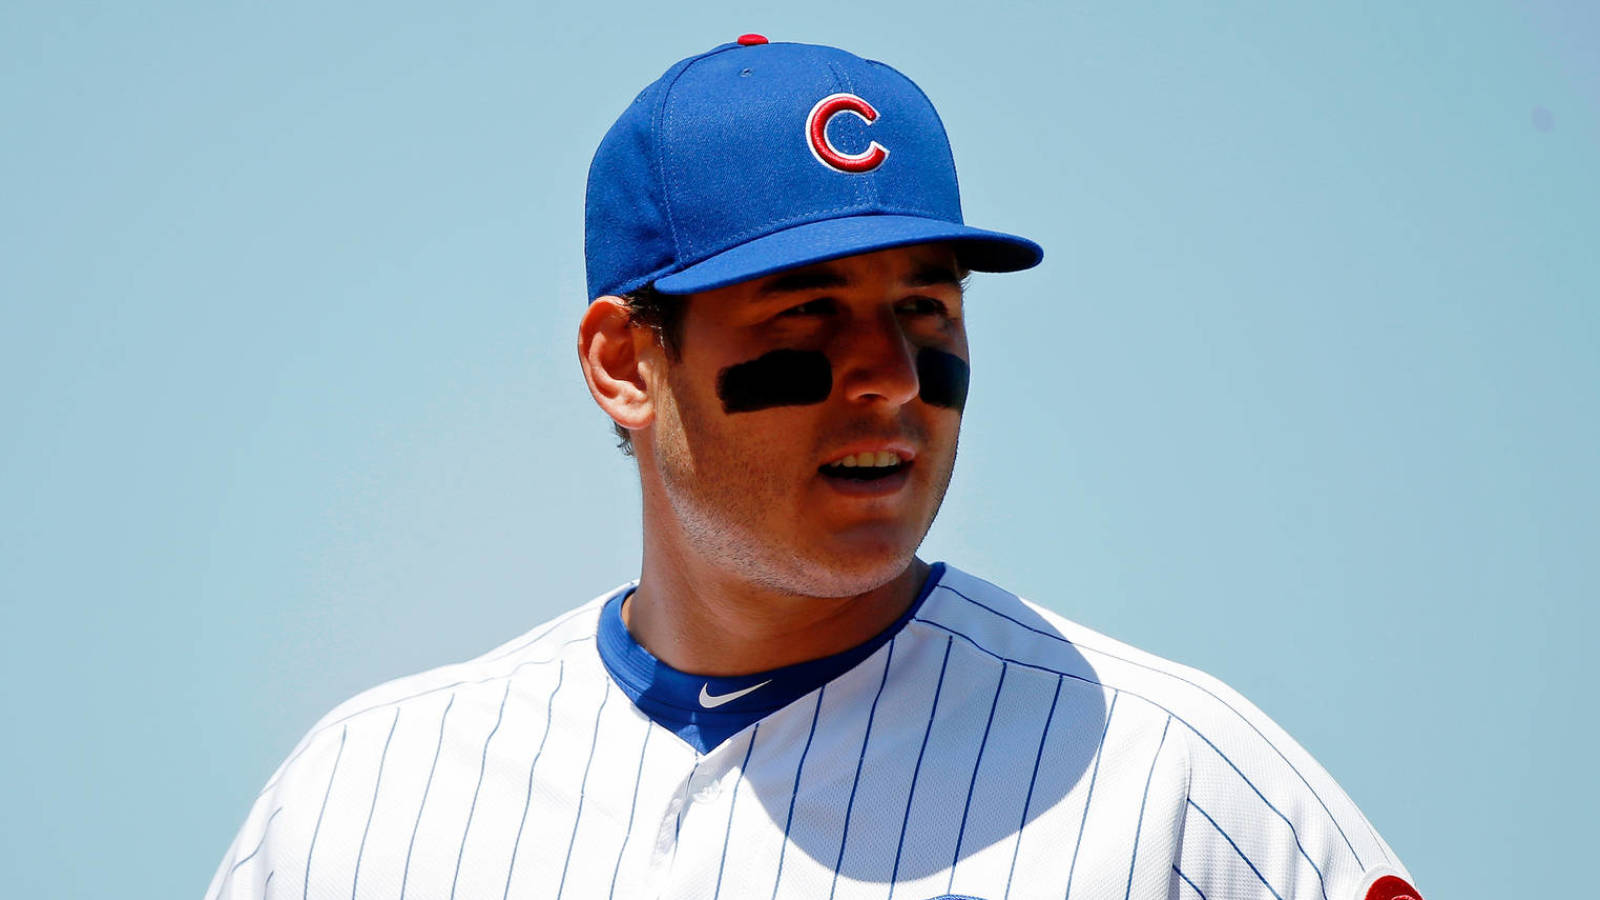 Cubs' Anthony Rizzo slams MLB for lack of player safety | Yardbarker